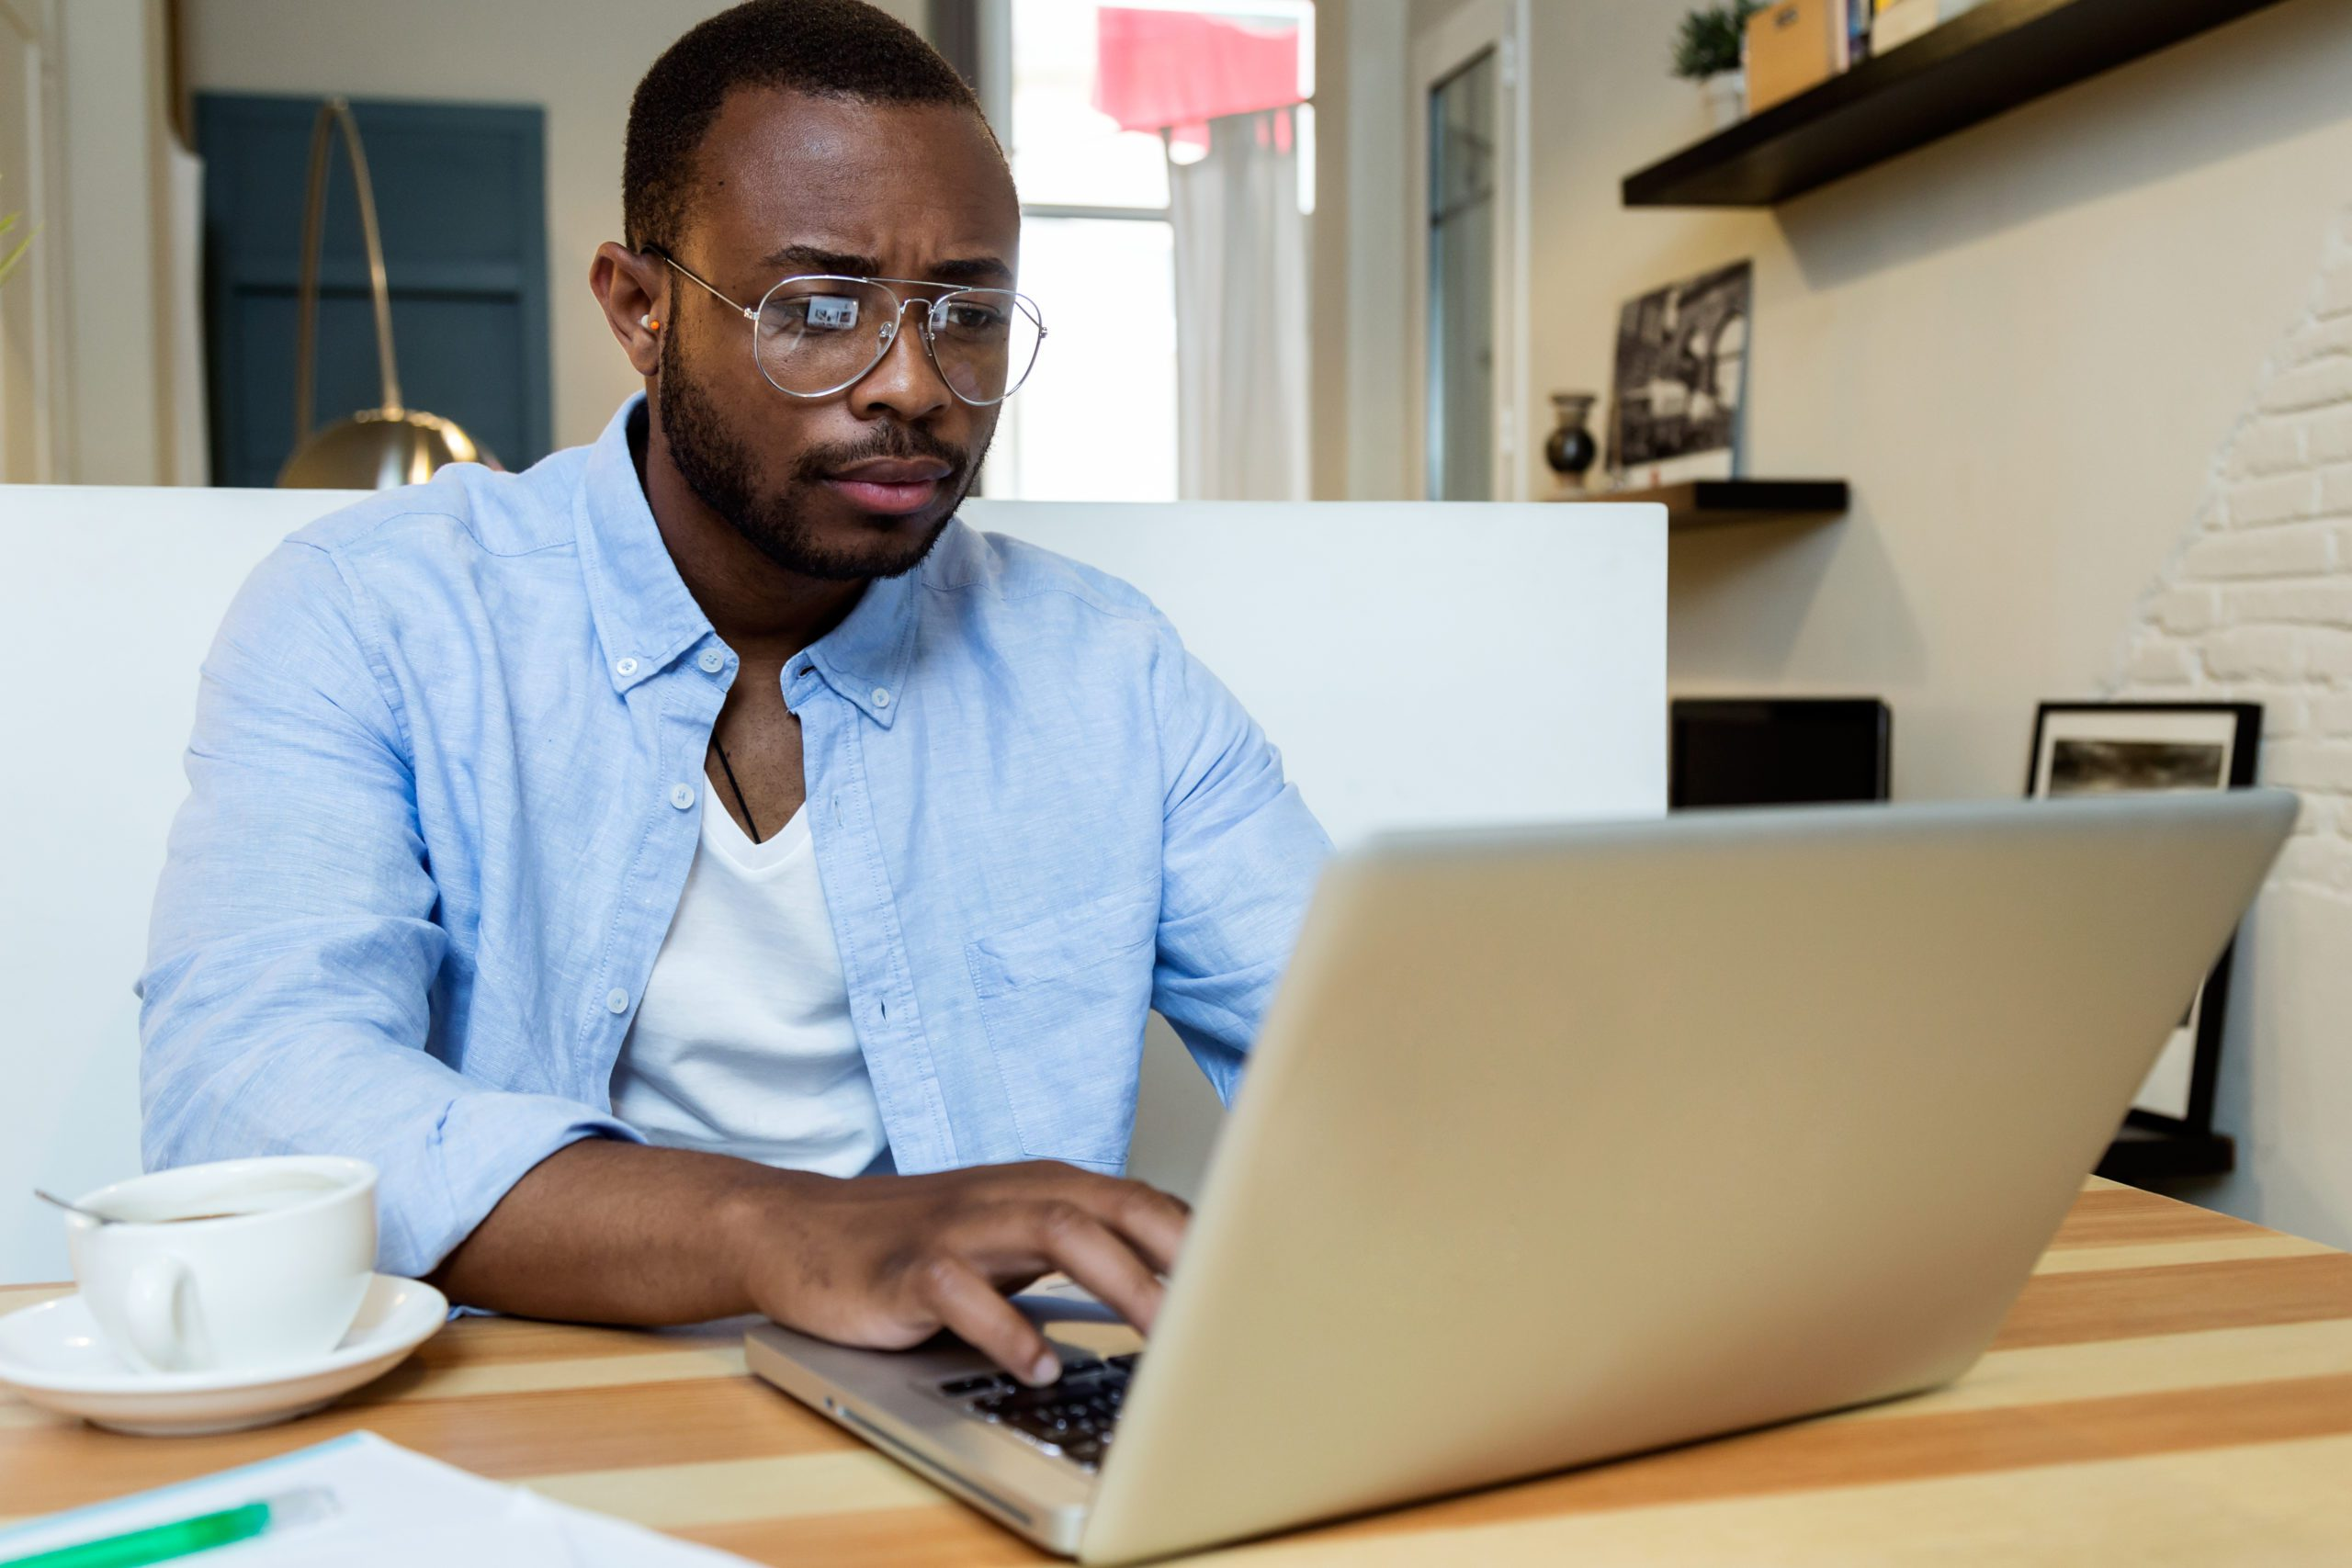 Portrait of handsome young black man working with laptop at home.